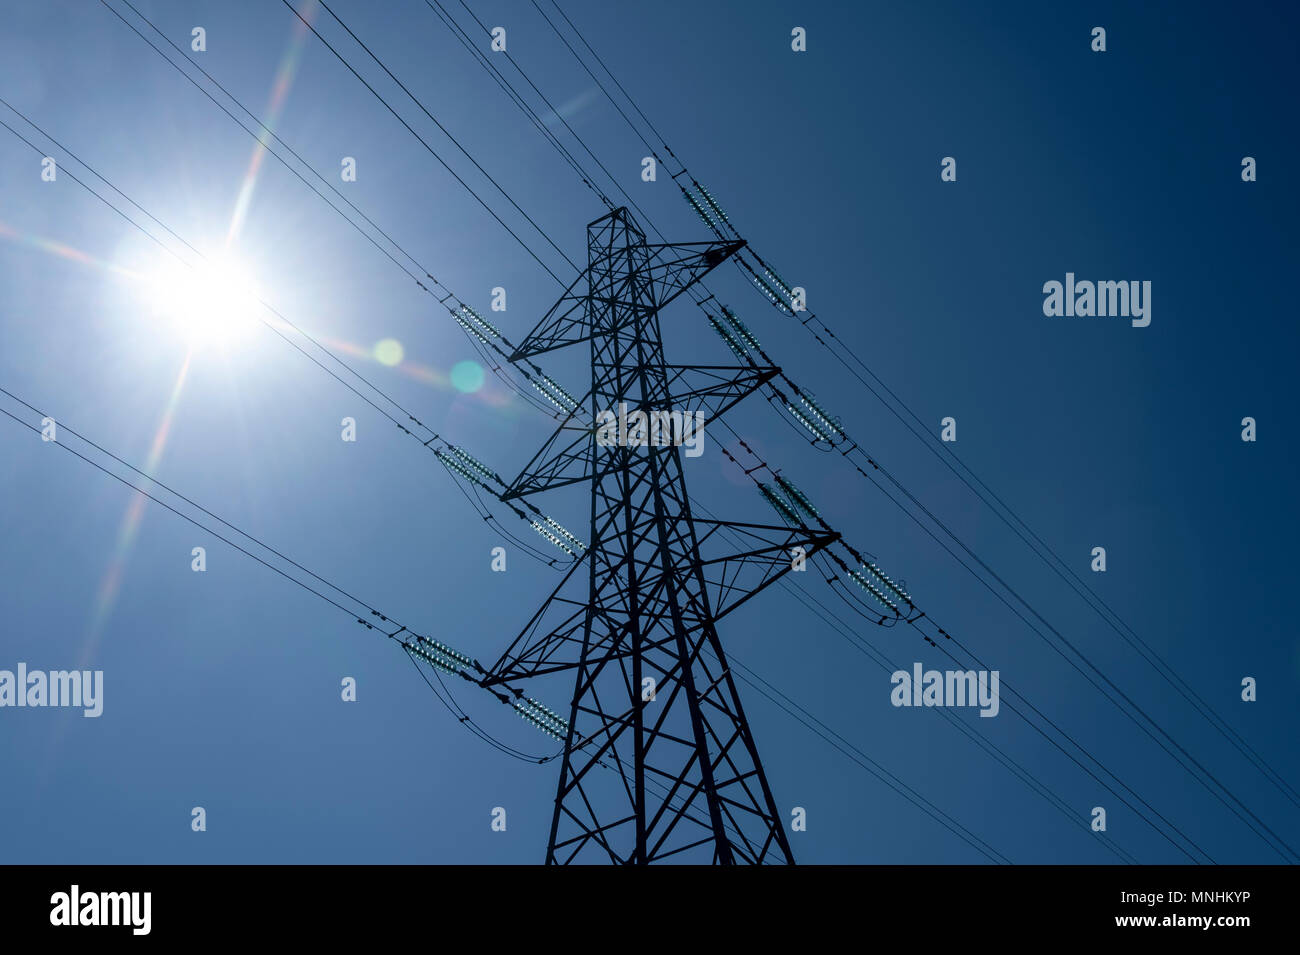 electricity pylon with lens flare - Stock Image